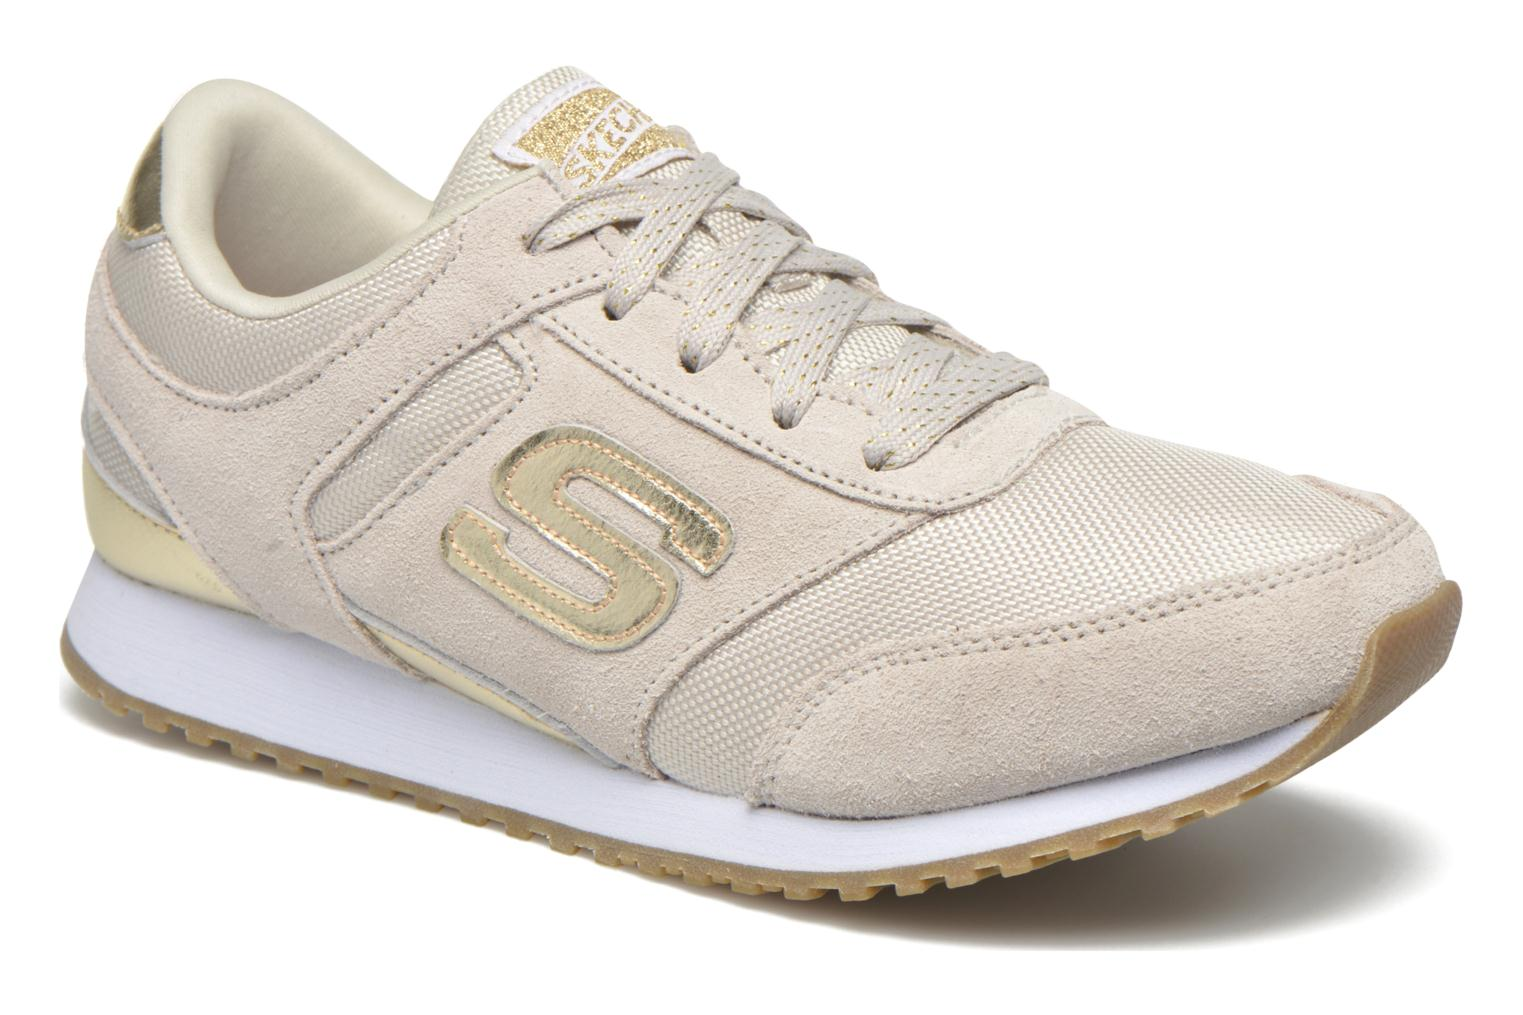 OG 78 - Gold Fever Whitegold